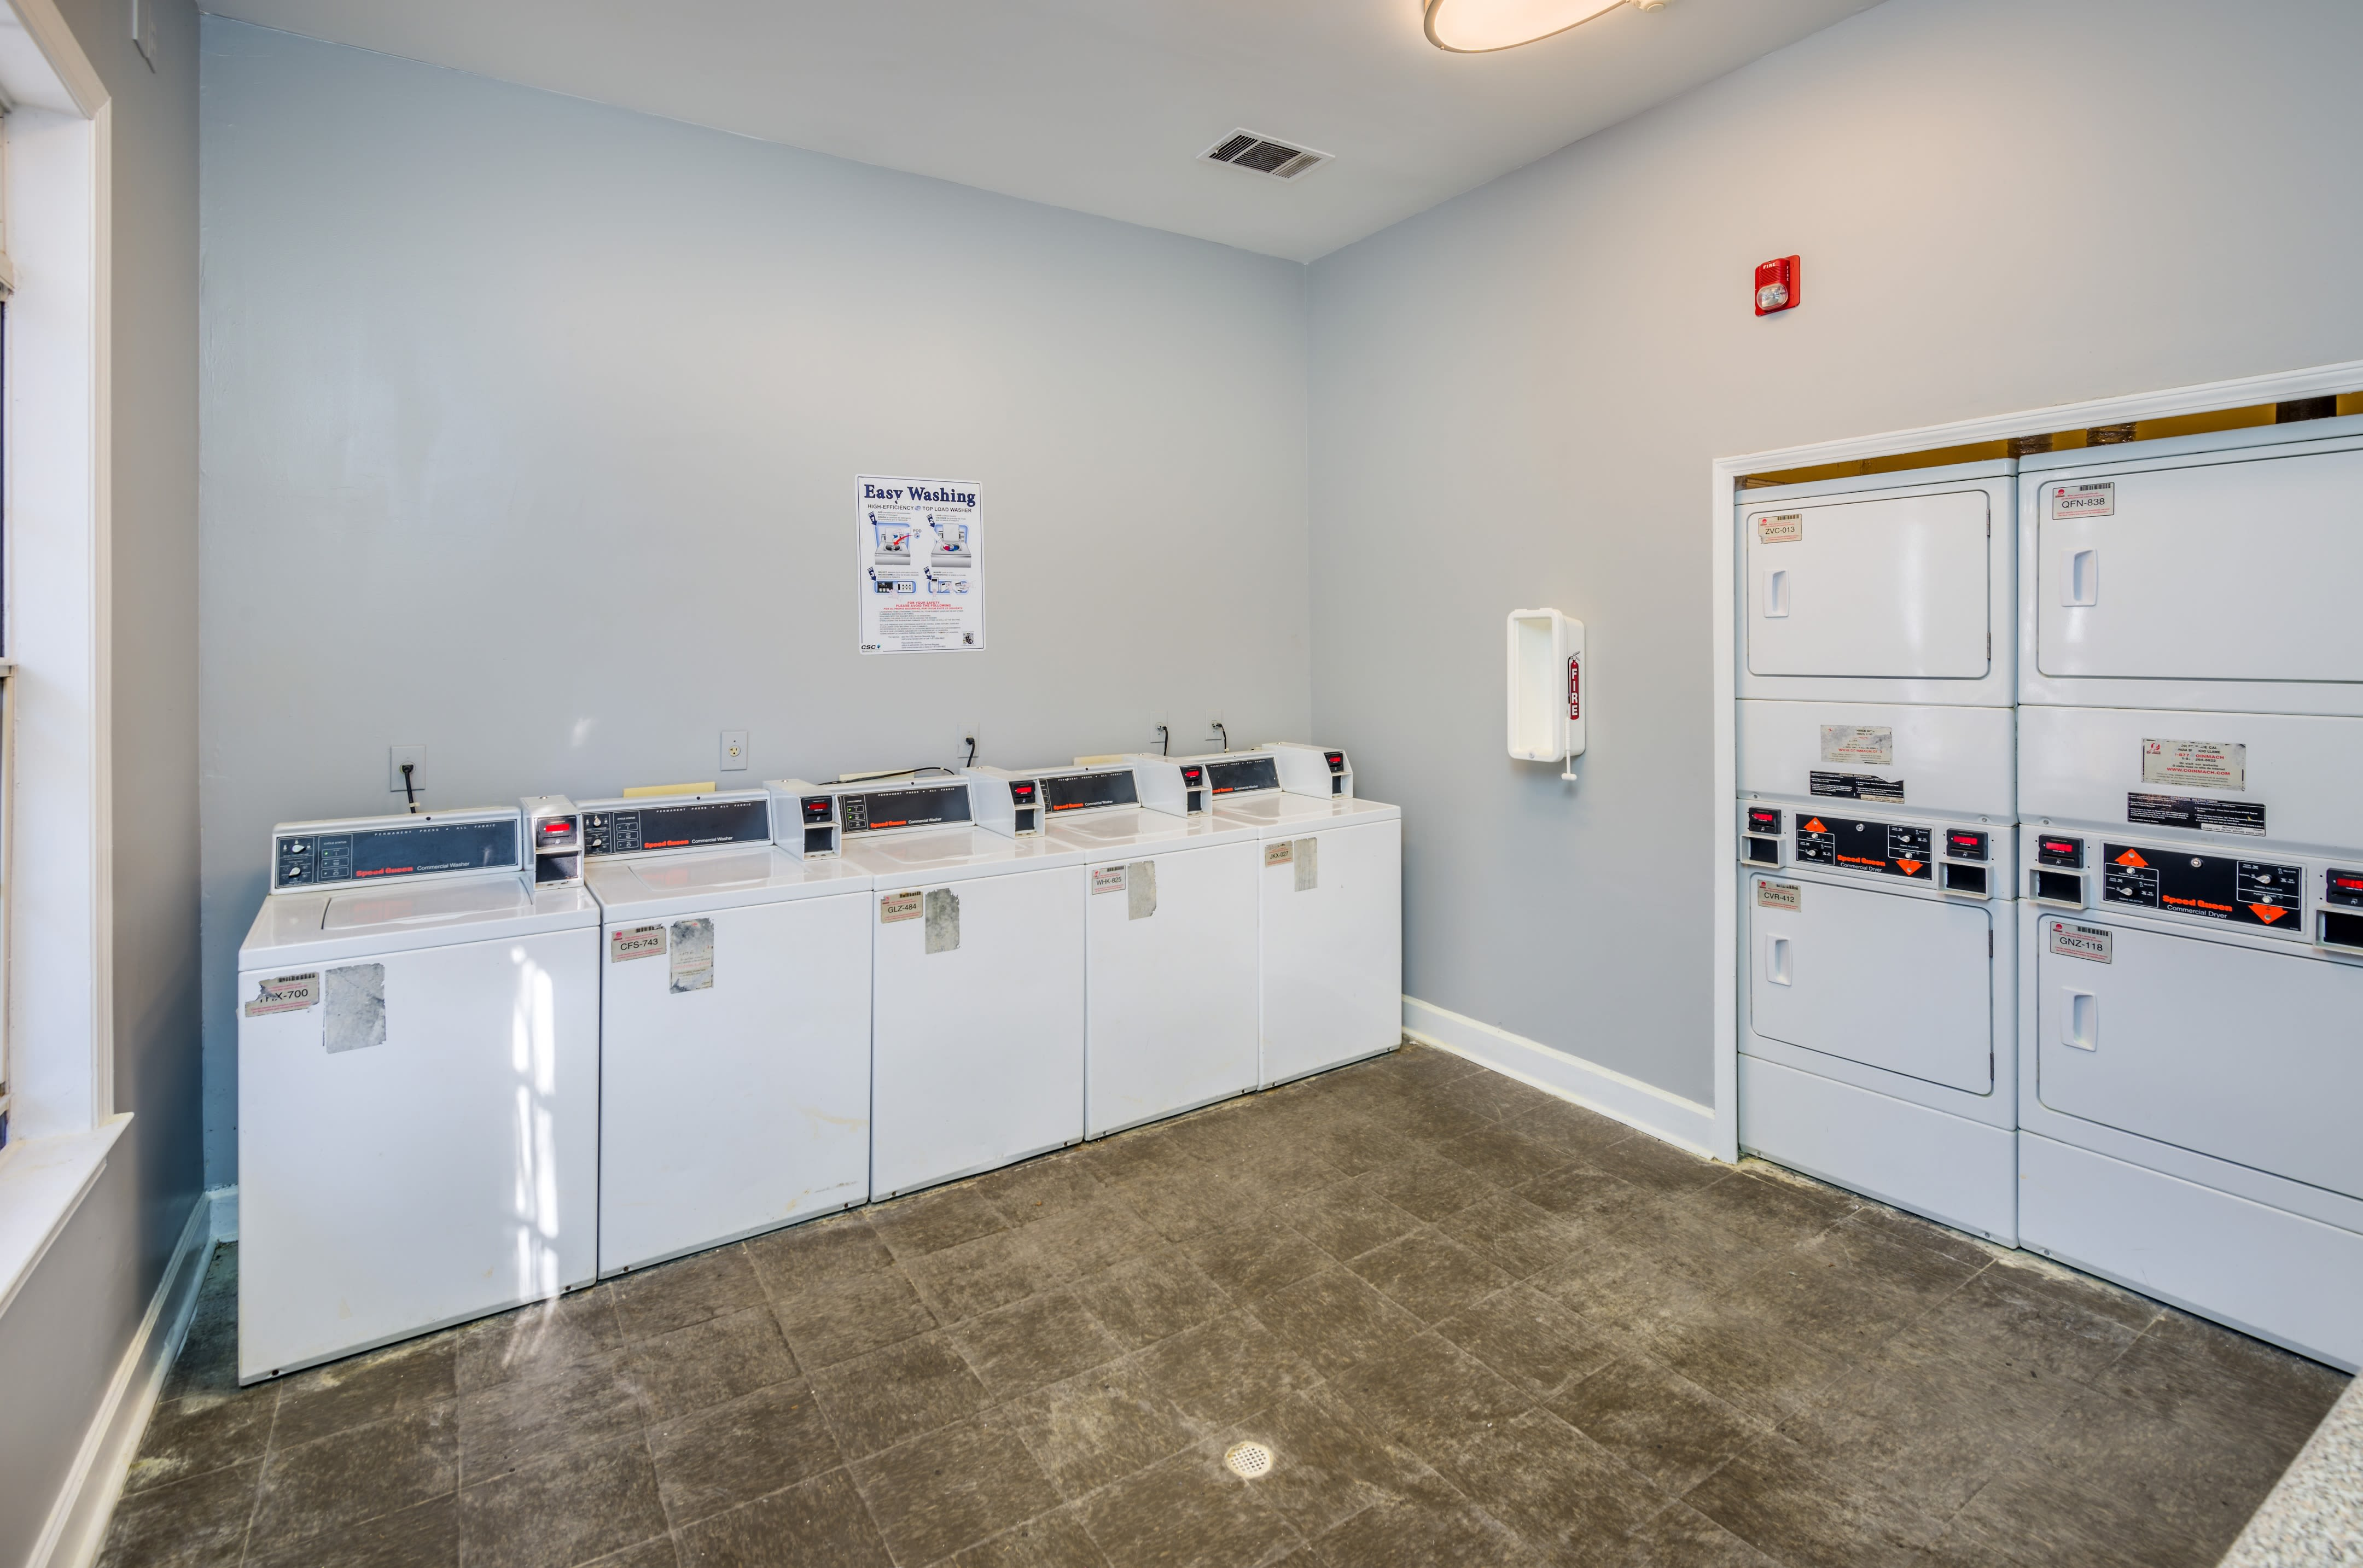 Onsite washers and dryers for residents at The Oxford in Conyers, Georgia